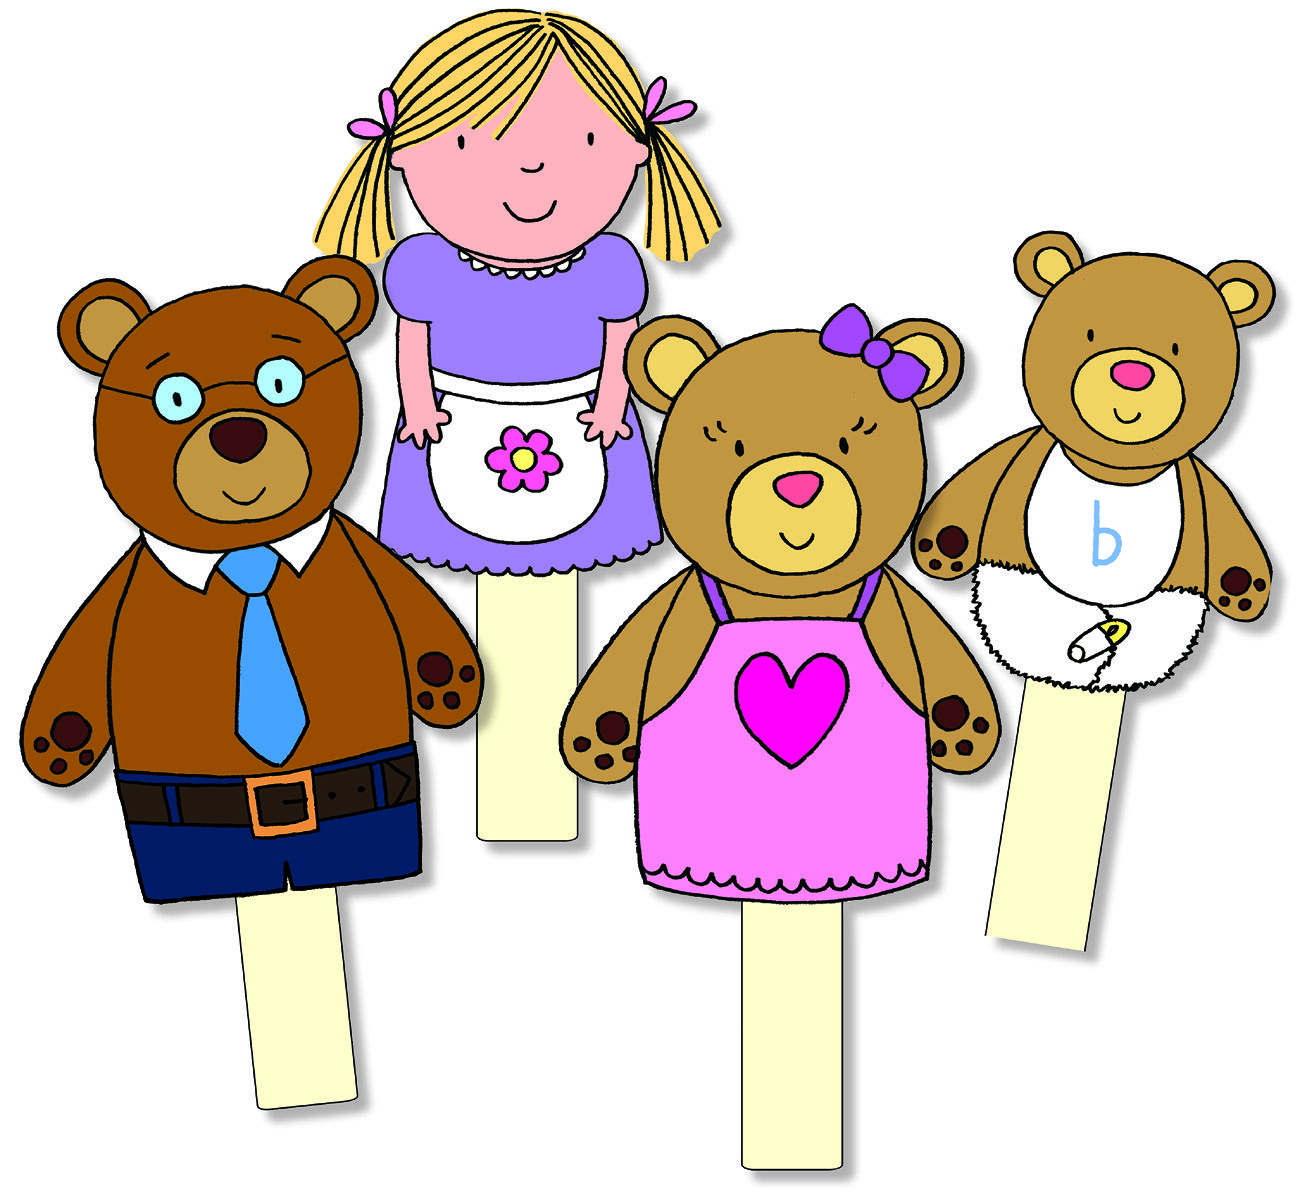 goldilocks and the three bears clipart at getdrawings com free for rh getdrawings com goldilocks clip art free goldilocks house clipart